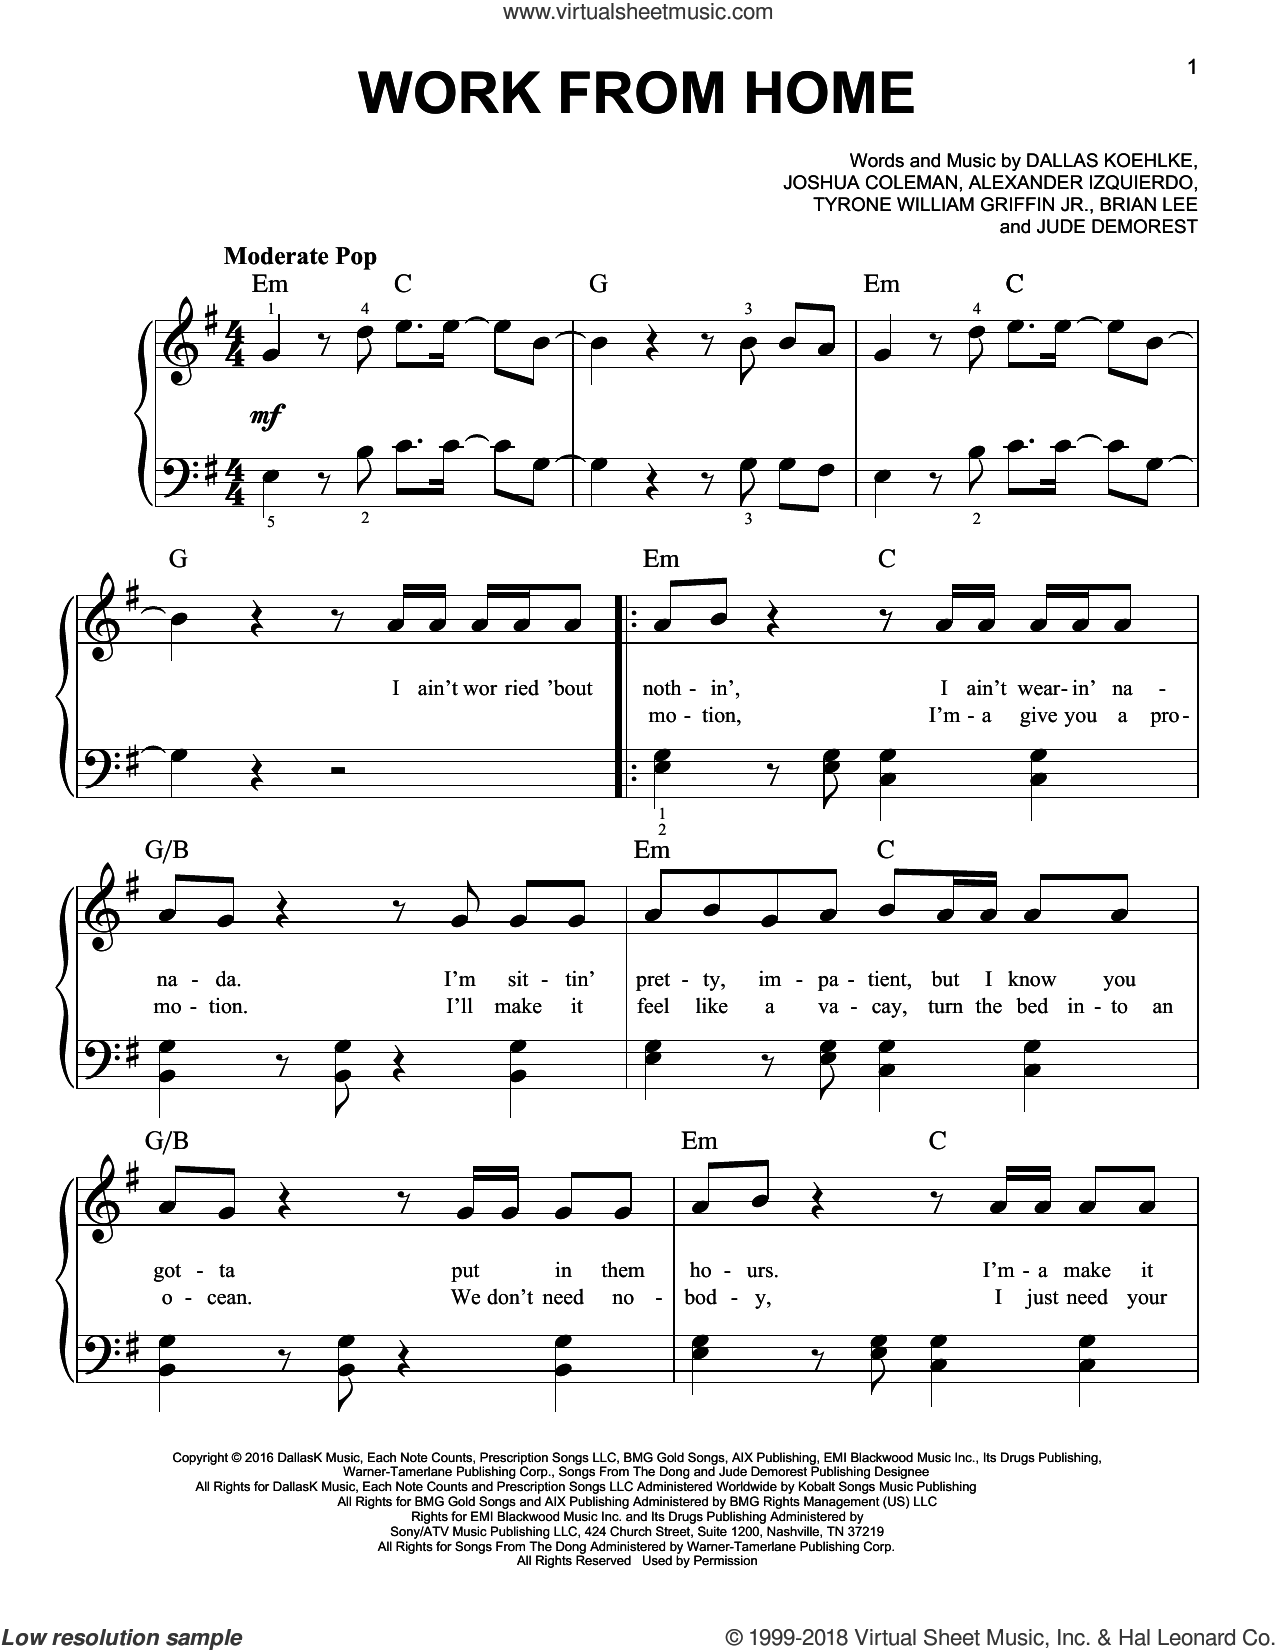 Work From Home sheet music for piano solo by Tyrone William Griffin Jr.